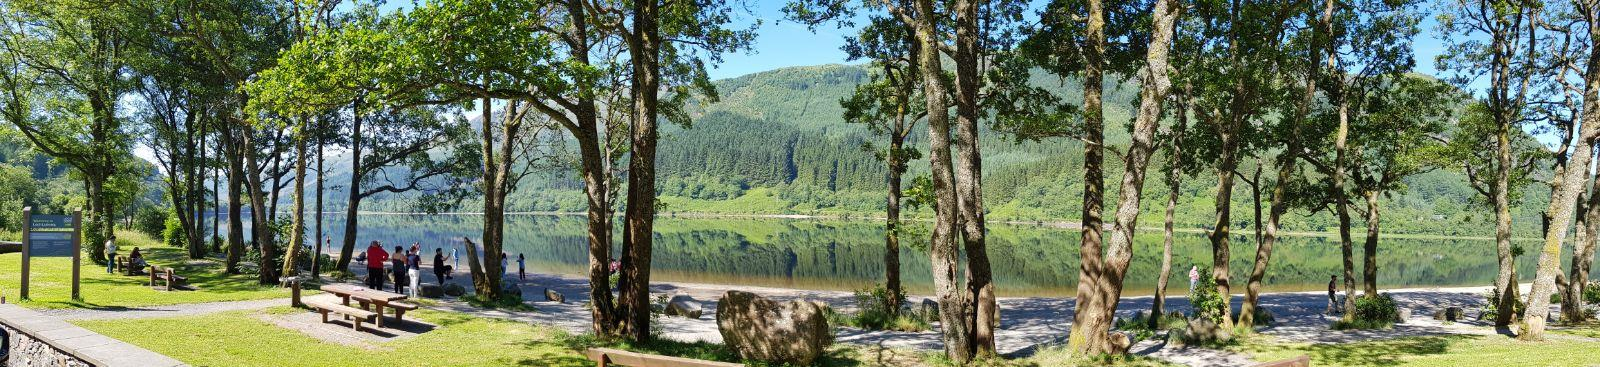 Ness-Lake,-Inverness-and-Highlands-Trip-5